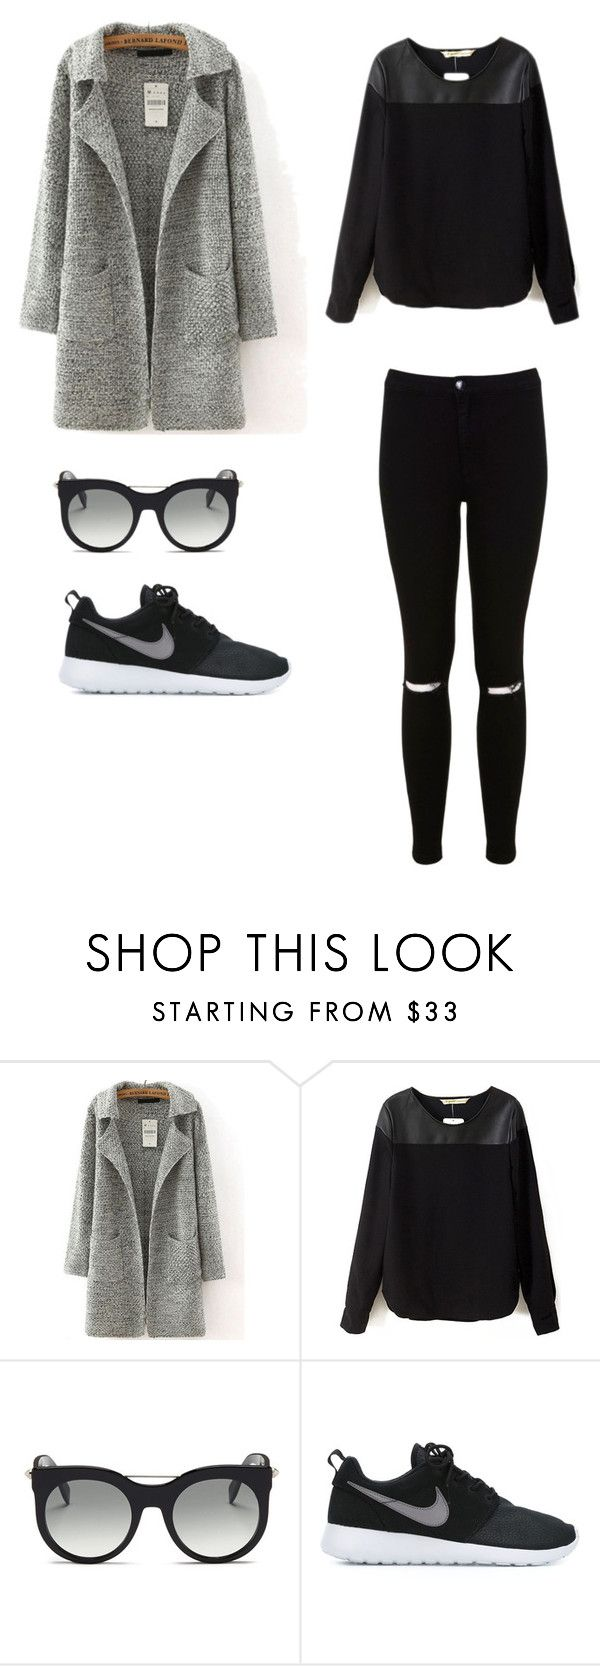 """""""Cinema with family (goosebumps)"""" by brooke-elliott-1 ❤ liked on Polyvore featuring Alexander McQueen, NIKE and Miss Selfridge"""